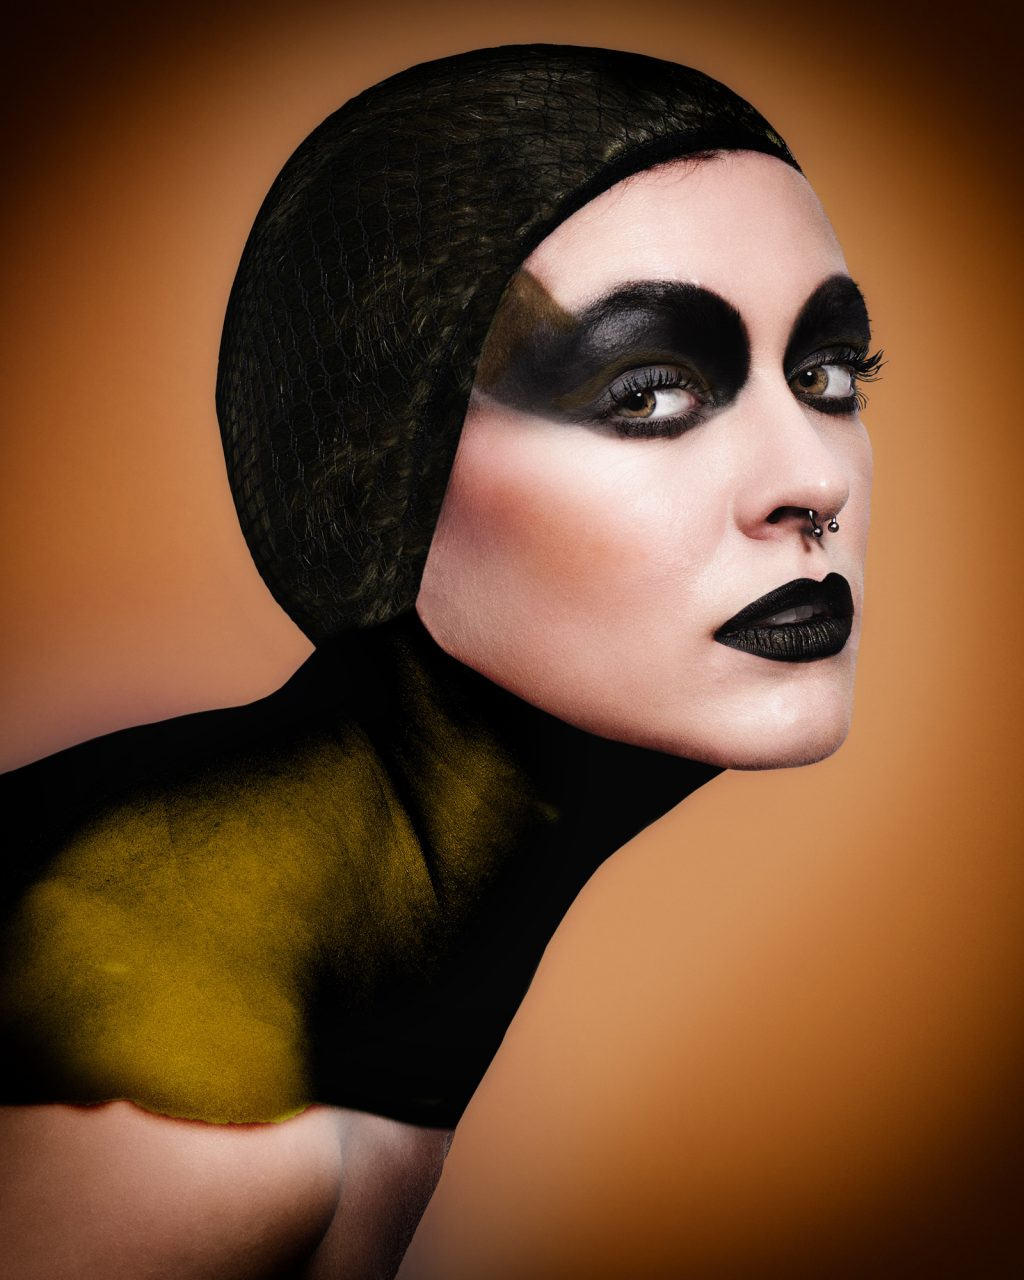 Portrait of a model with dramatic black makeup - Gold Award in Commercial Photography by Michael Hayes